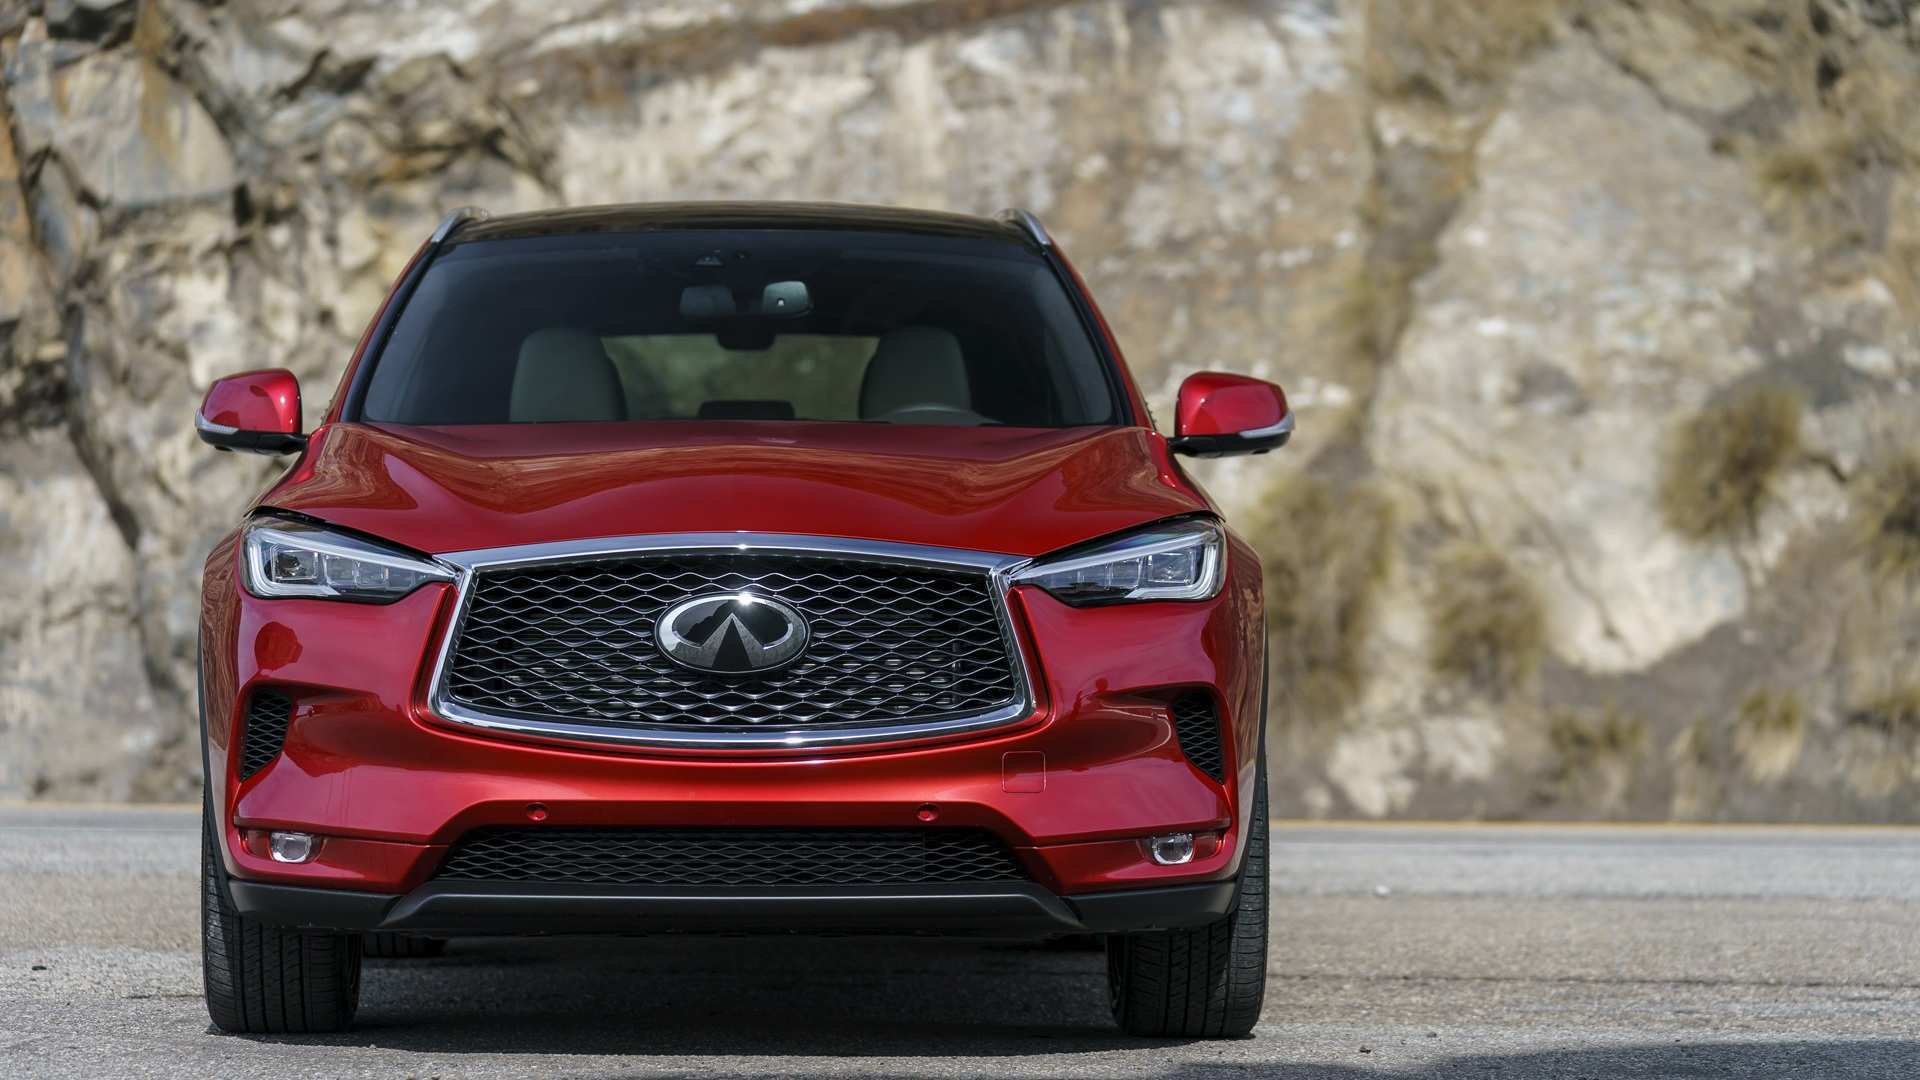 69 All New 2019 Infiniti Qx50 First Drive New Review